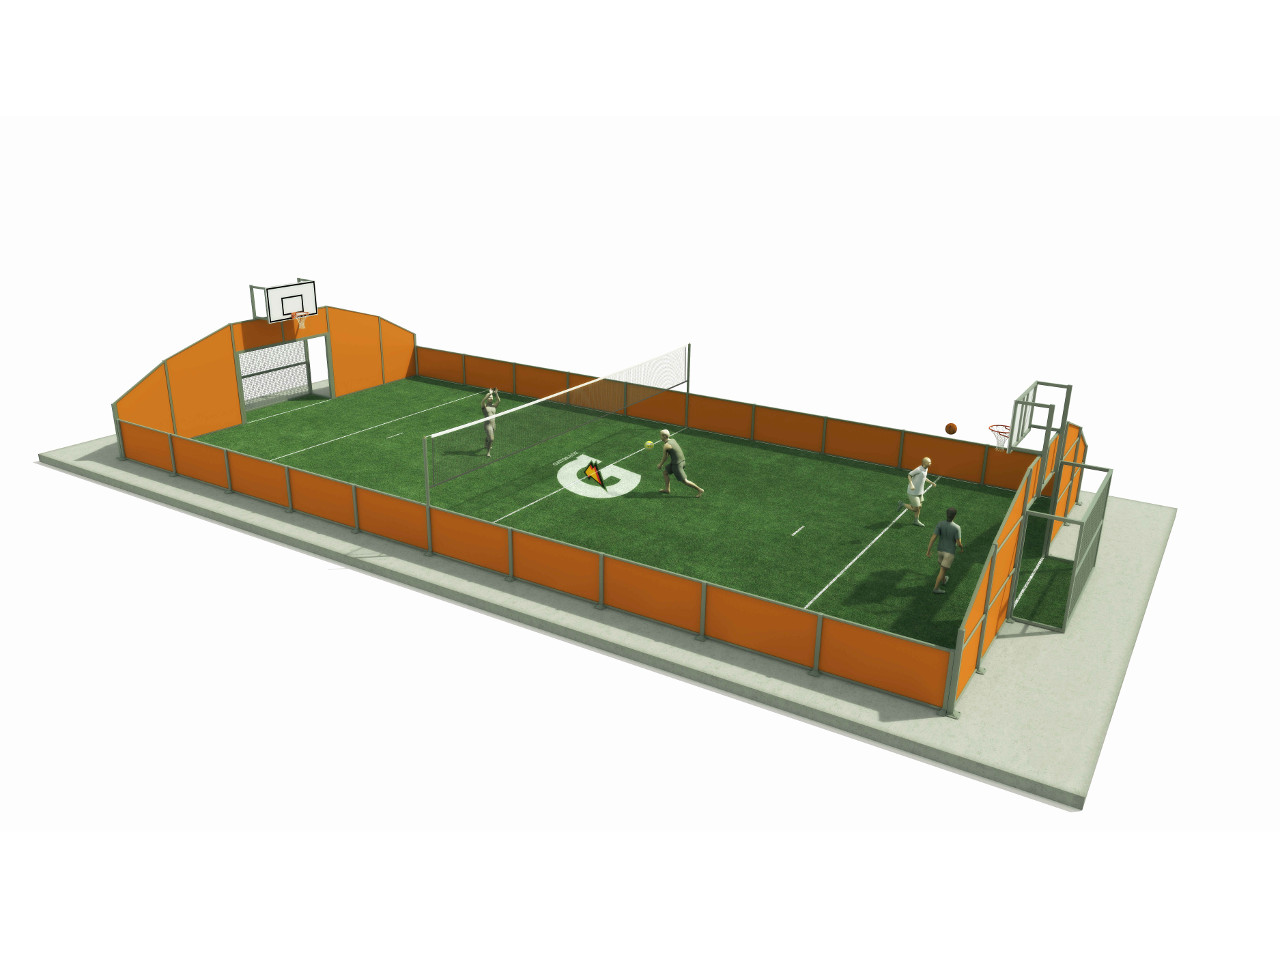 MUGA phenolic closure